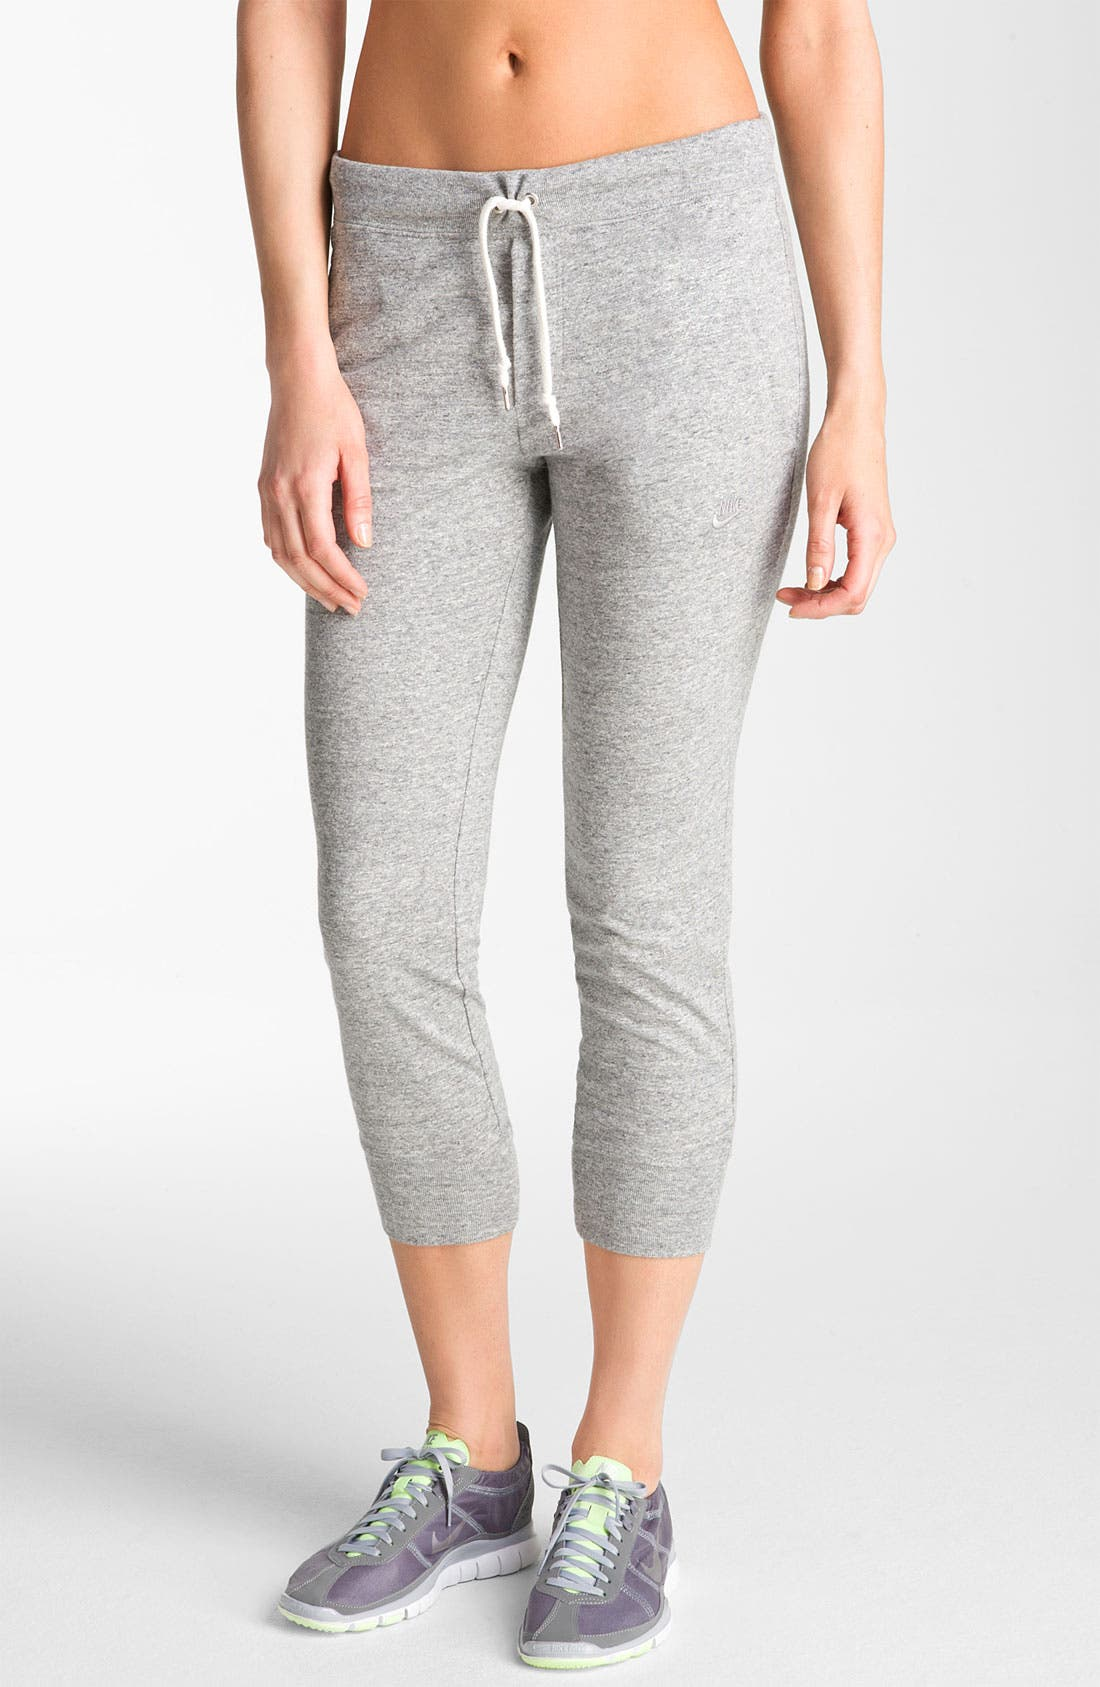 Alternate Image 1 Selected - Nike 'Time Out' Capris